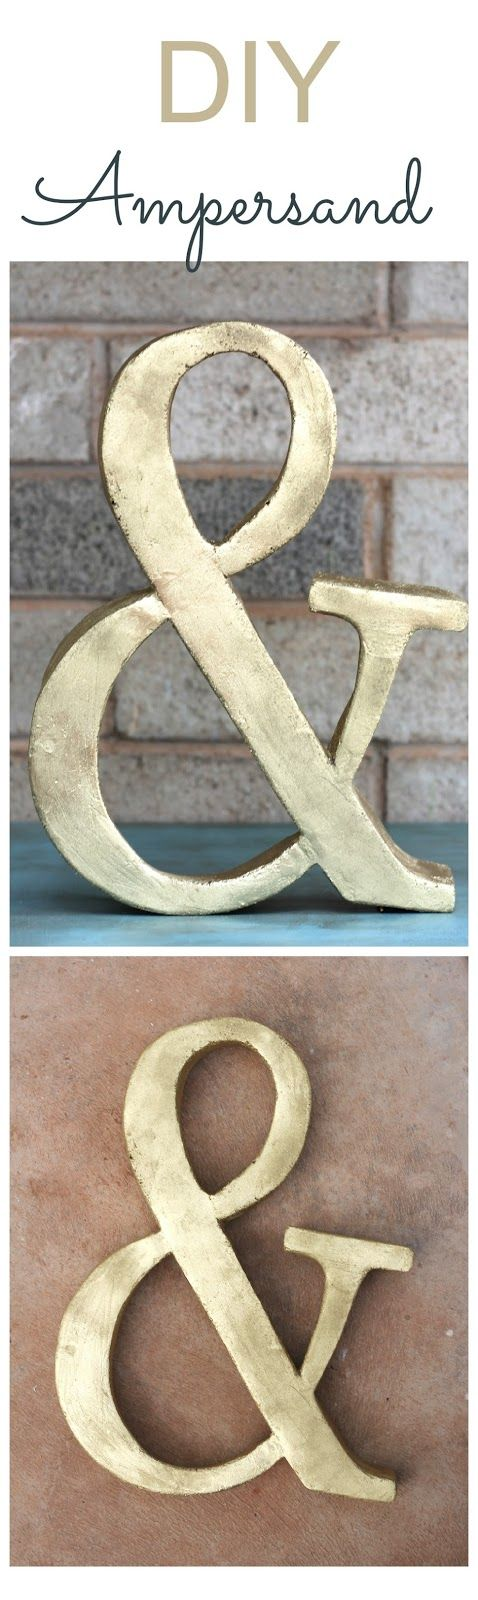 Diy Crafts Can You Believe That This Is A Diy Ampersand Wow You Will Not Guess What Diyall Net Home Of Diy Craft Ideas Inspiration Diy Projects